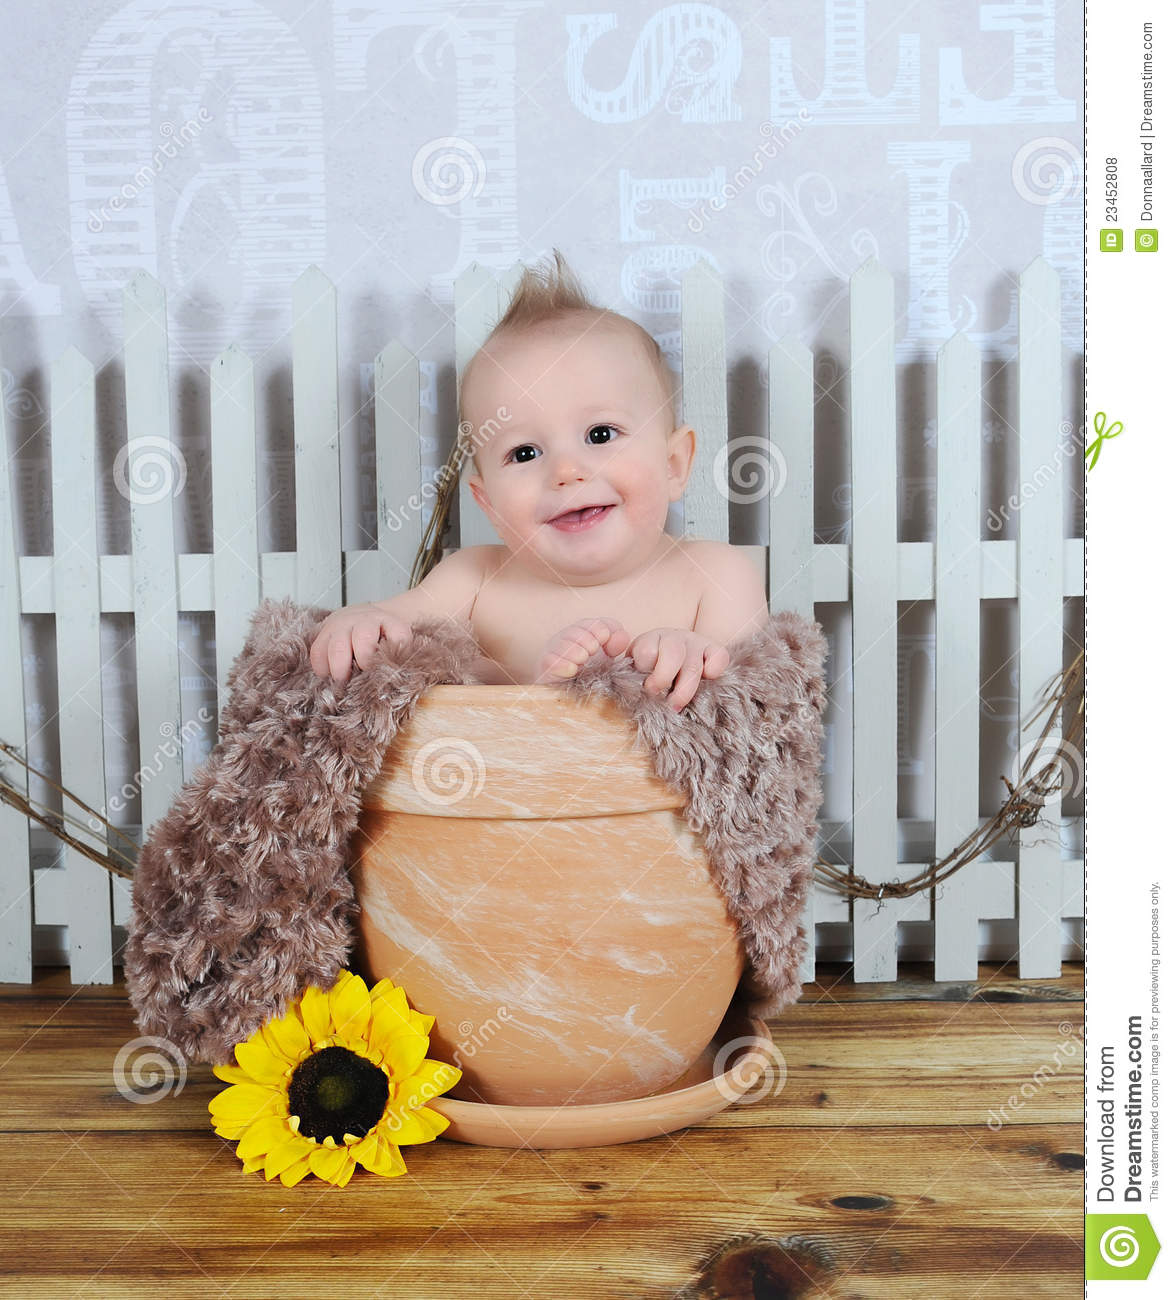 Adorable Baby Boy Sitting In Clay Flower Pot Stock Photo